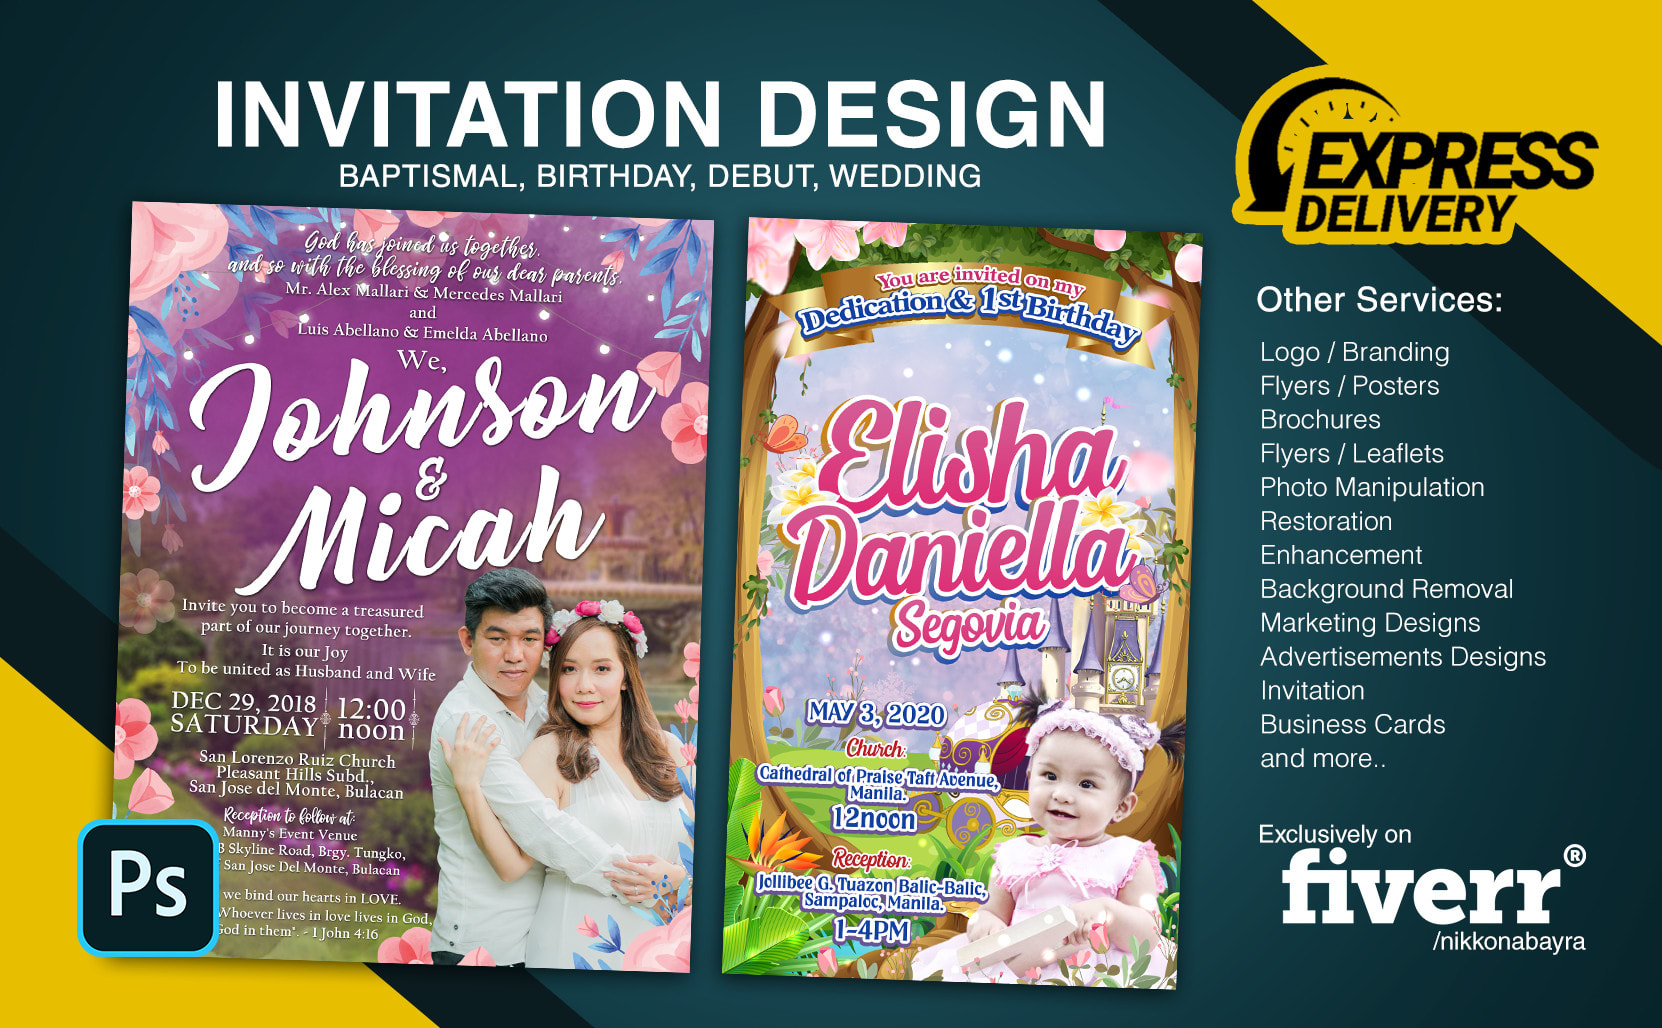 do invitation for birthday party debut wedding layout